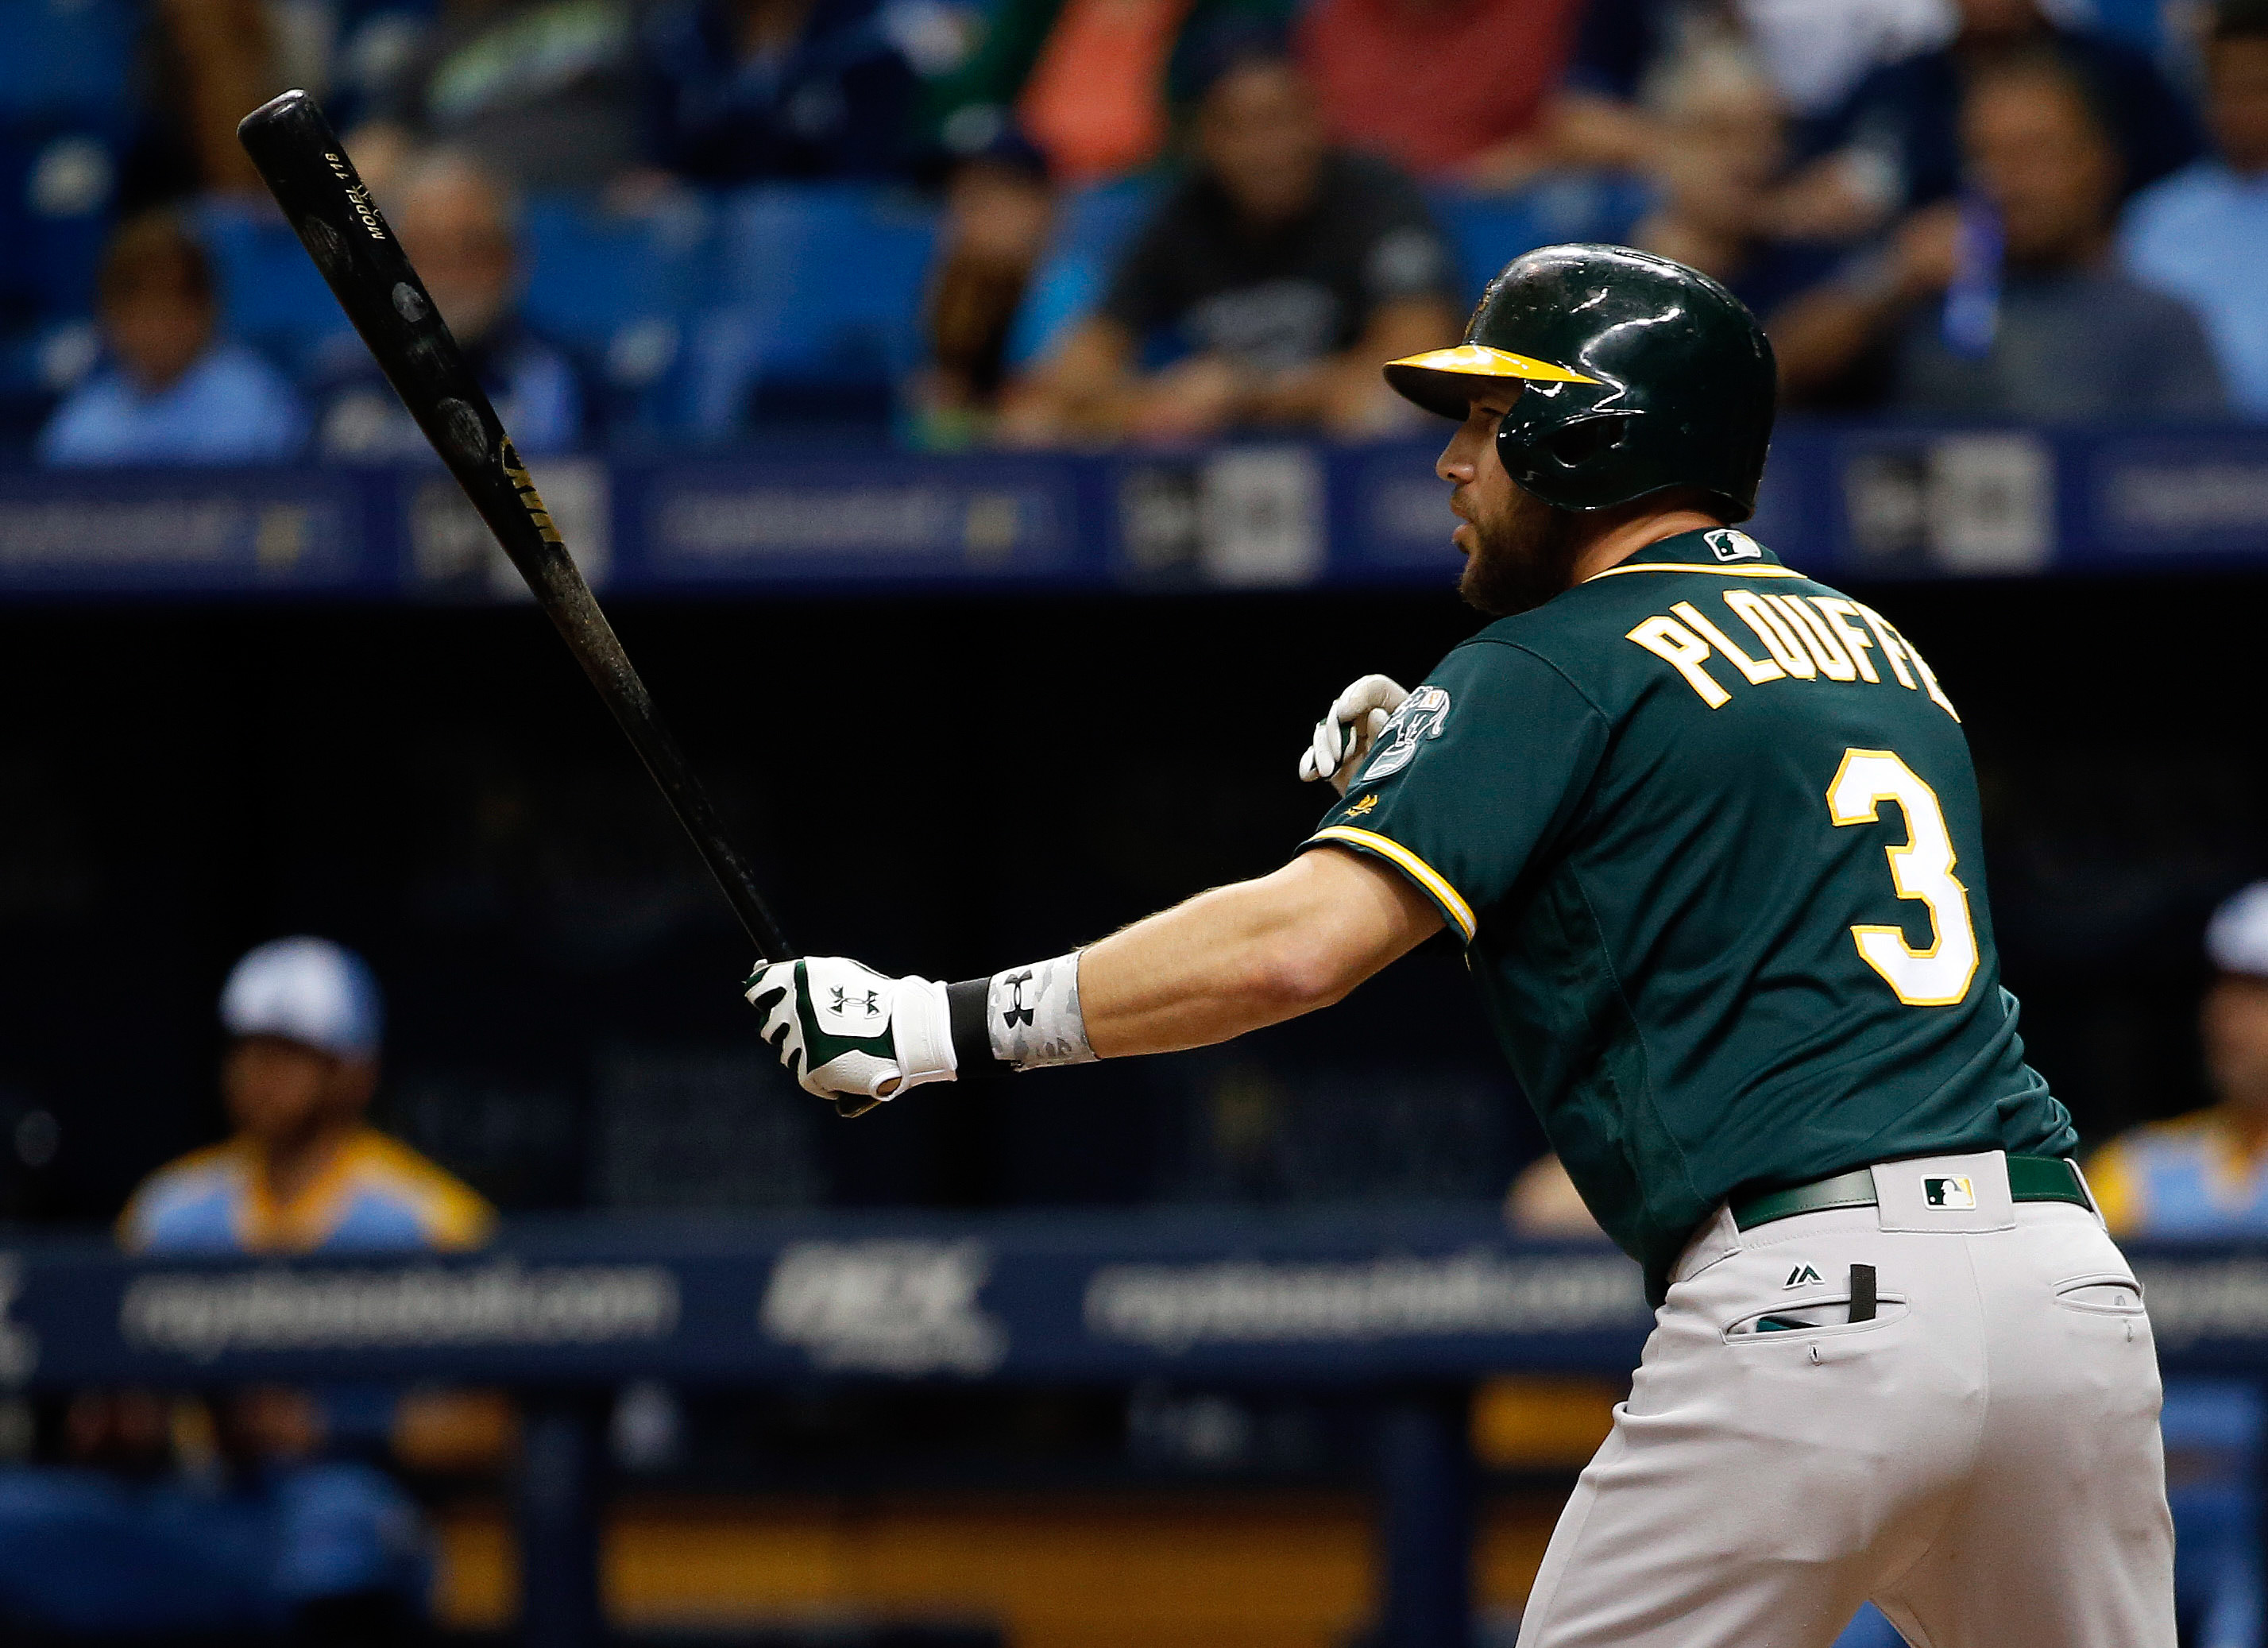 10116162-mlb-game-one-oakland-athletics-at-tampa-bay-rays